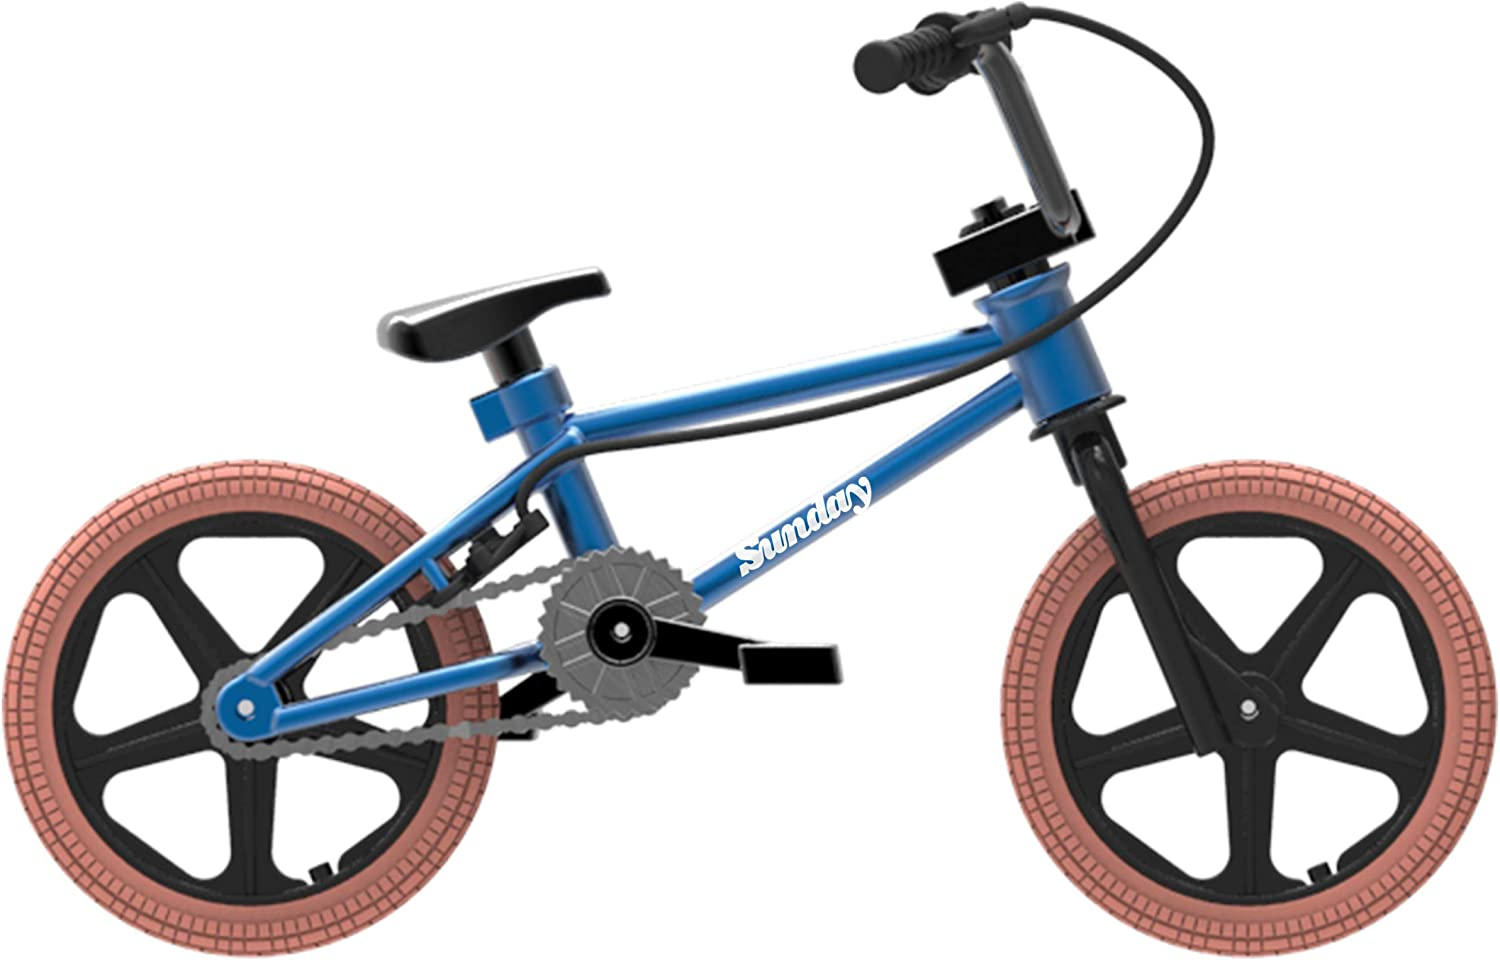 Tech Deck Bmx Finger Bike Sunday Blue Red Series 6 Action Toy Figures Amazon Canada